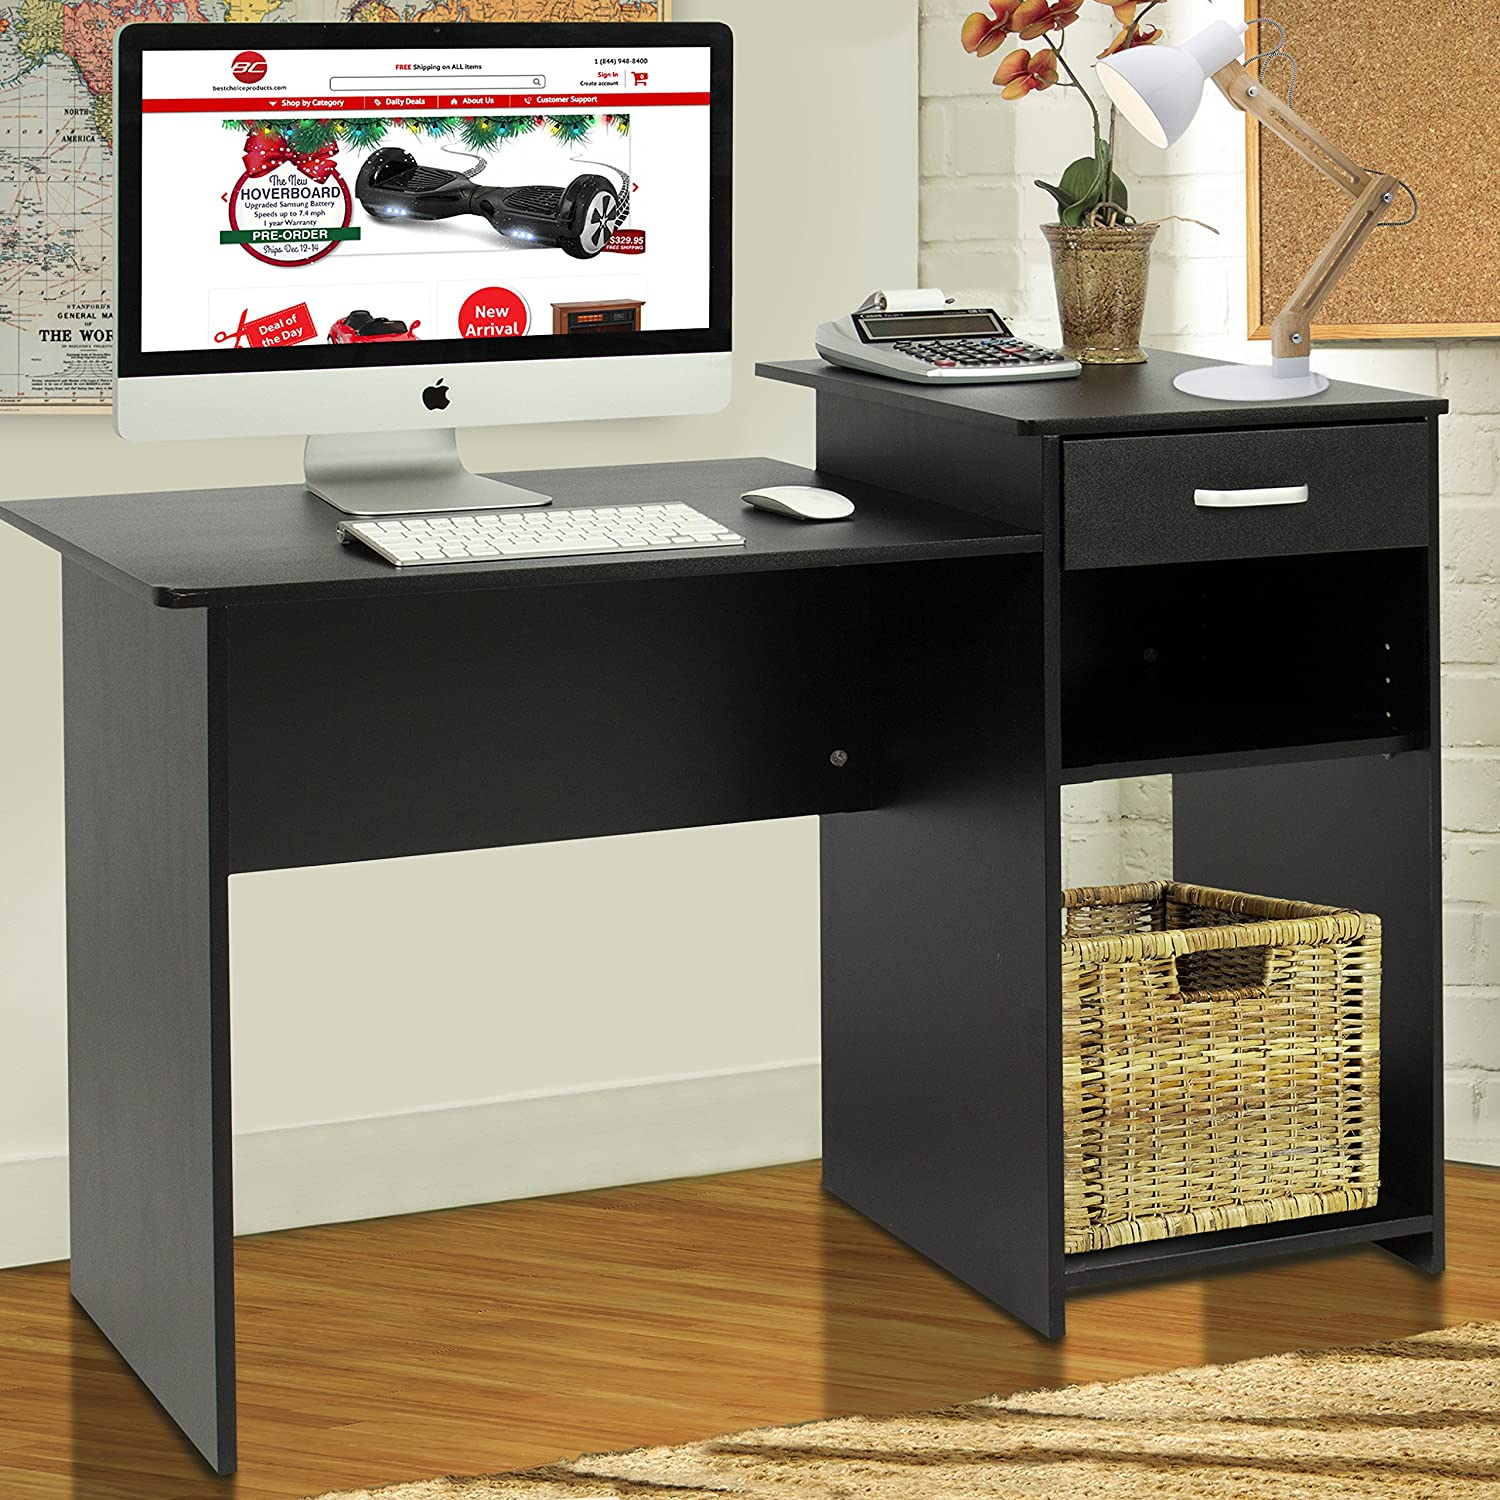 work desks home office. Amazon.com : Best Choice Products Student Computer Desk Home Office Wood Laptop Table Study Workstation Dorm Bk Work Desks N